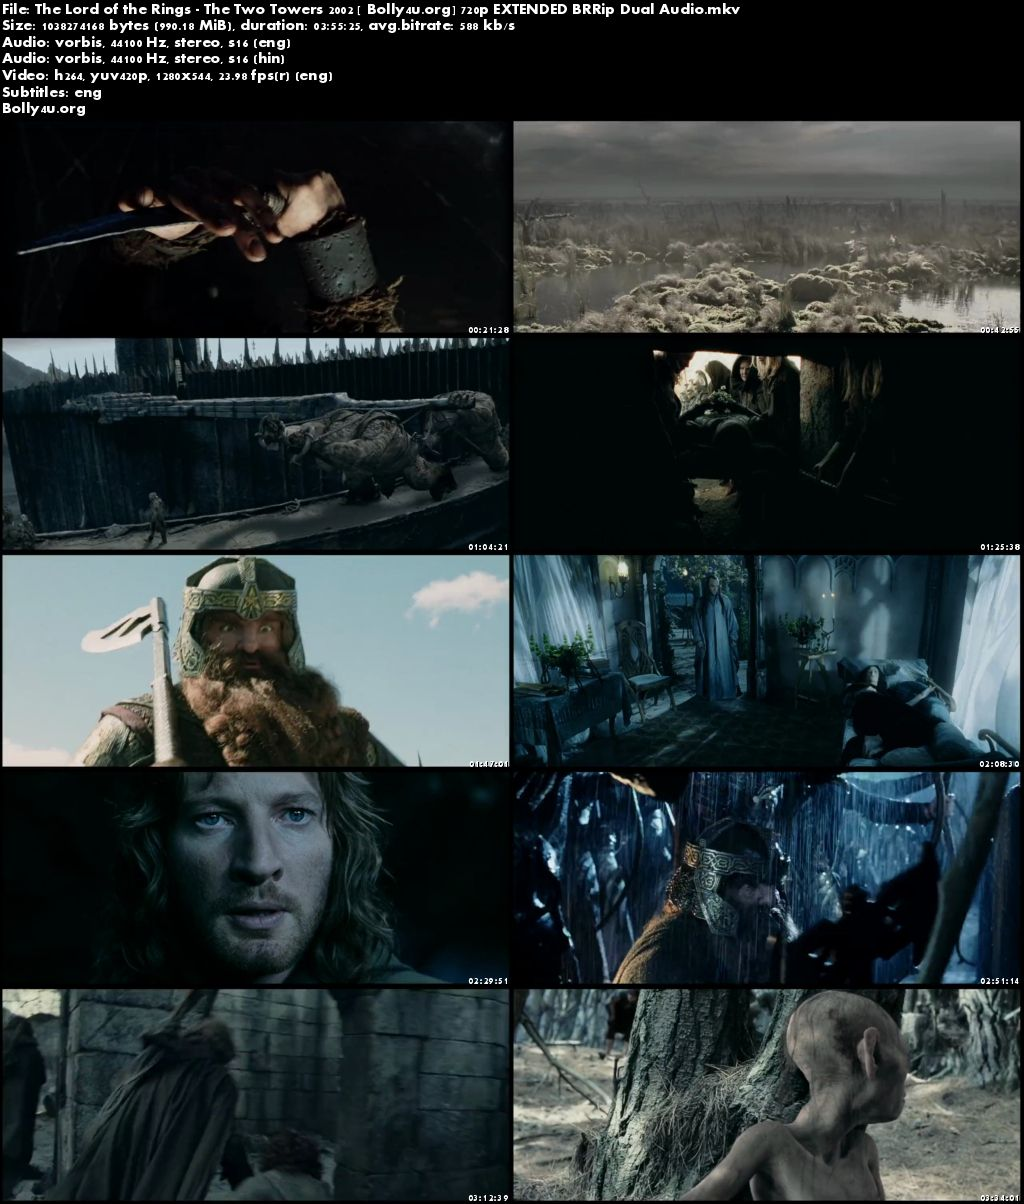 The Lord of the Rings The Two Towers 2002 BRRip 720p EXTENDED Dual Audio Download